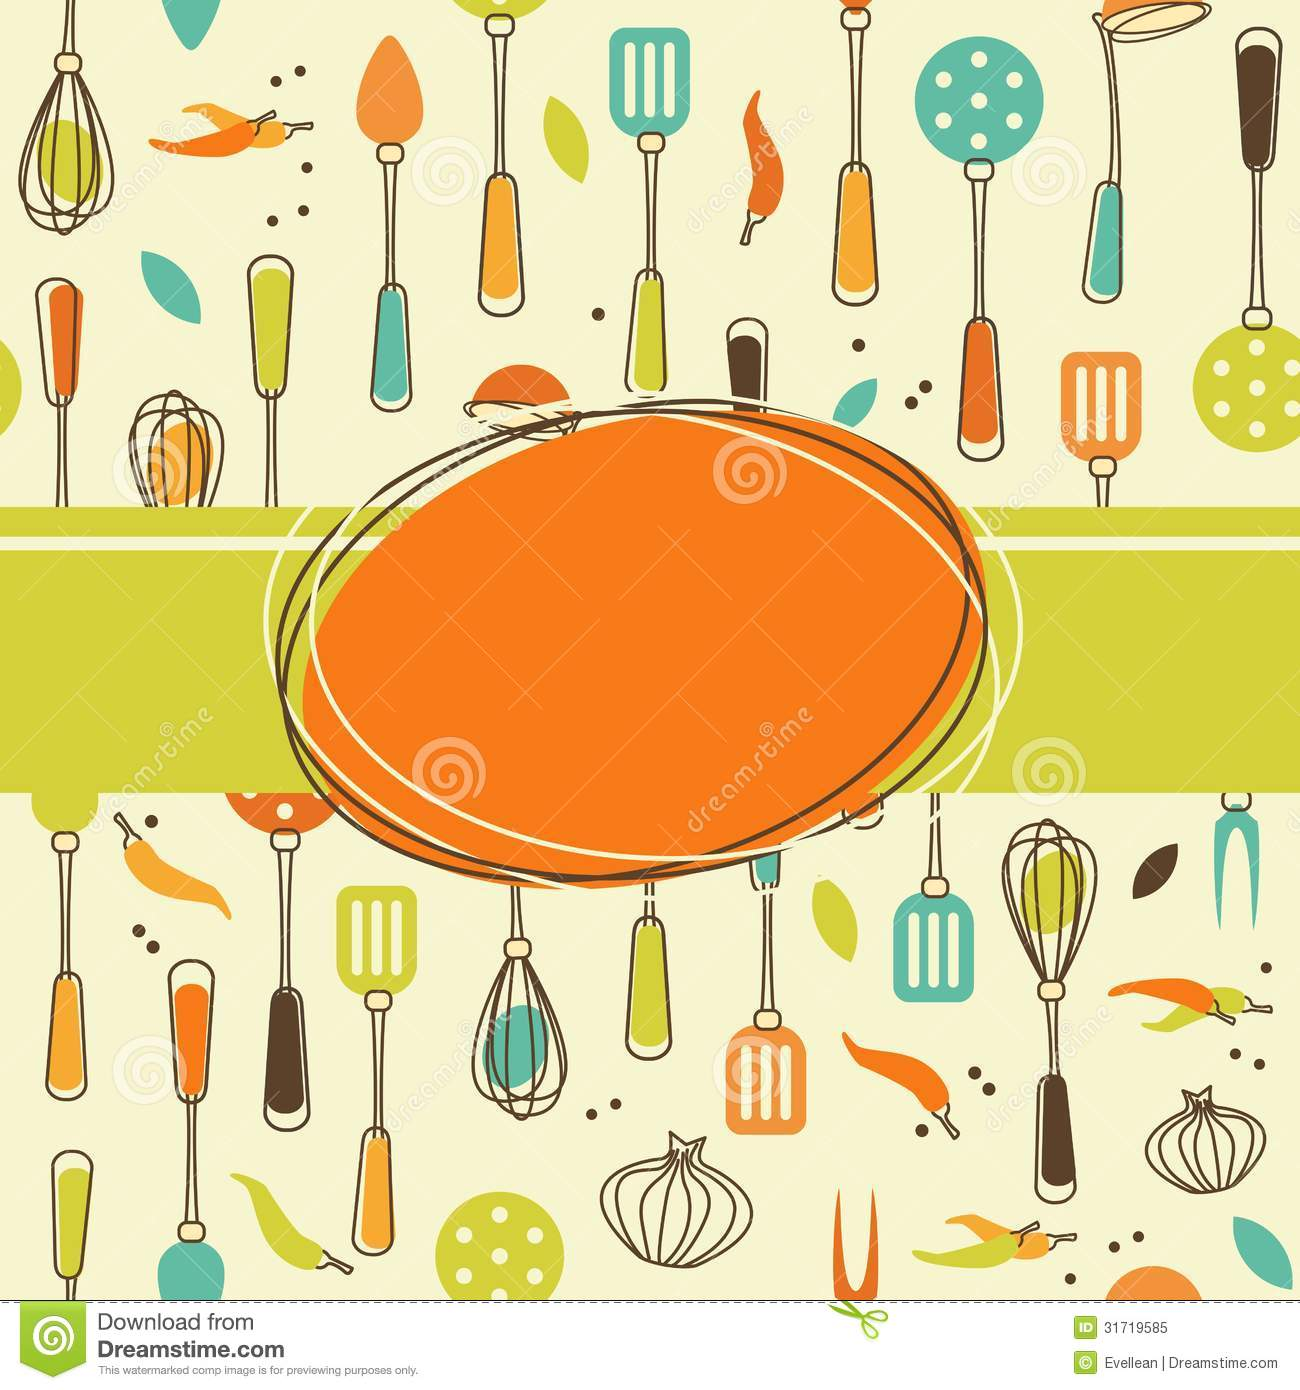 Kitchen Utensils Background creative kitchen background stock vector - image: 51644207